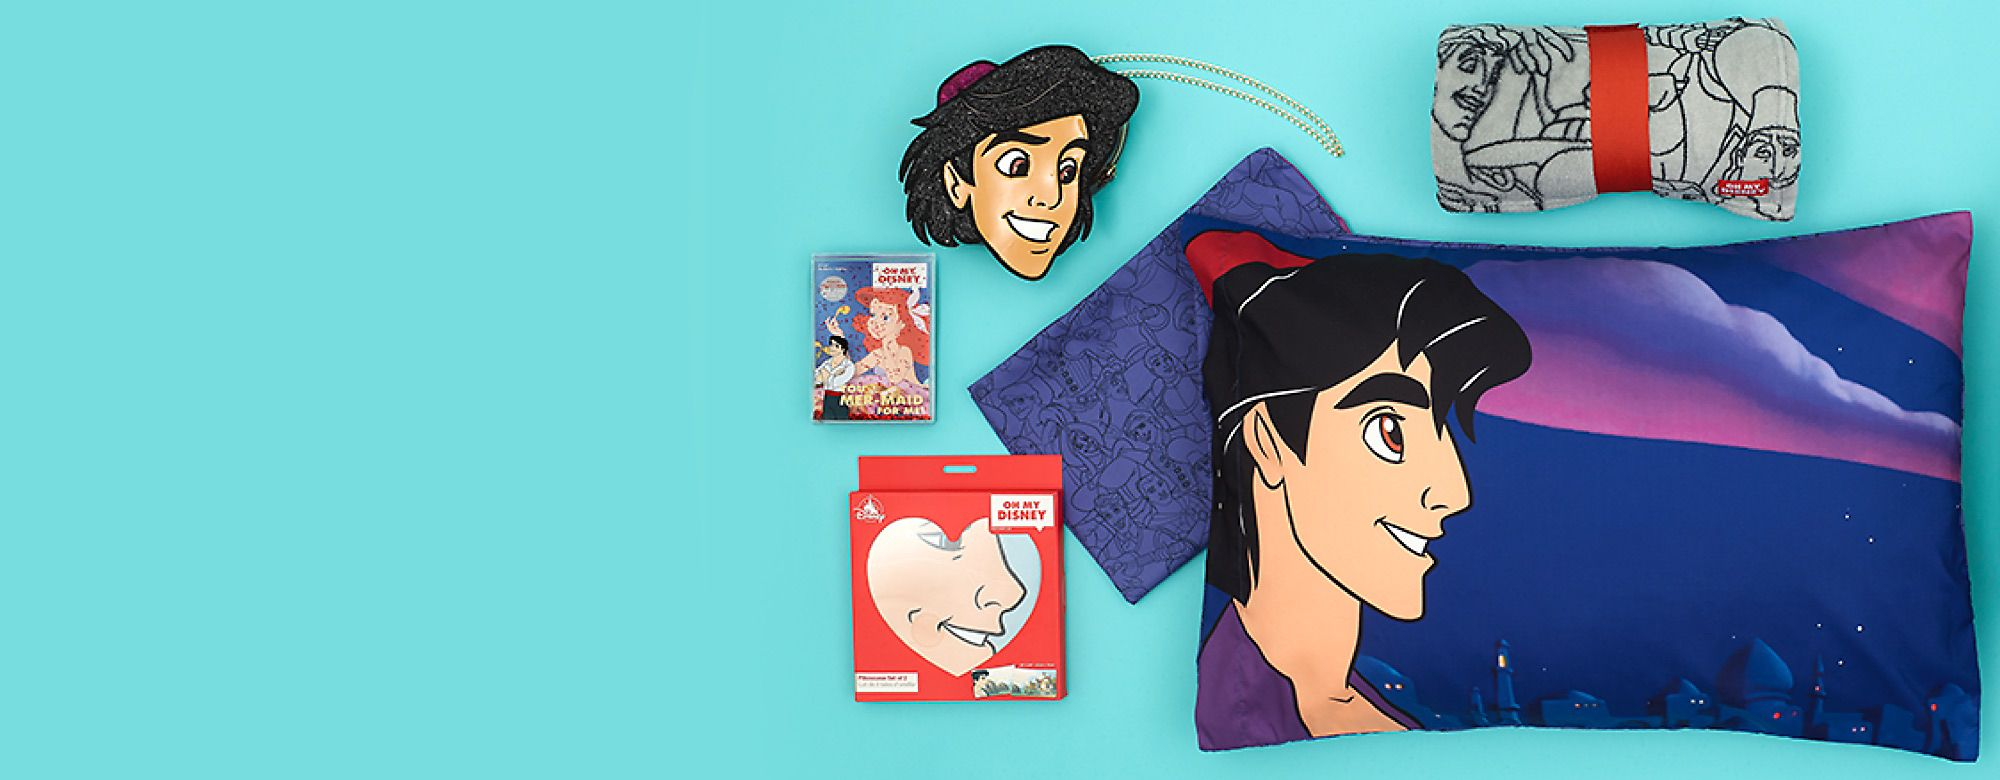 Oh My Disney Let Happily Ever After begin with our quirky Disney Prince collection SHOP ALL